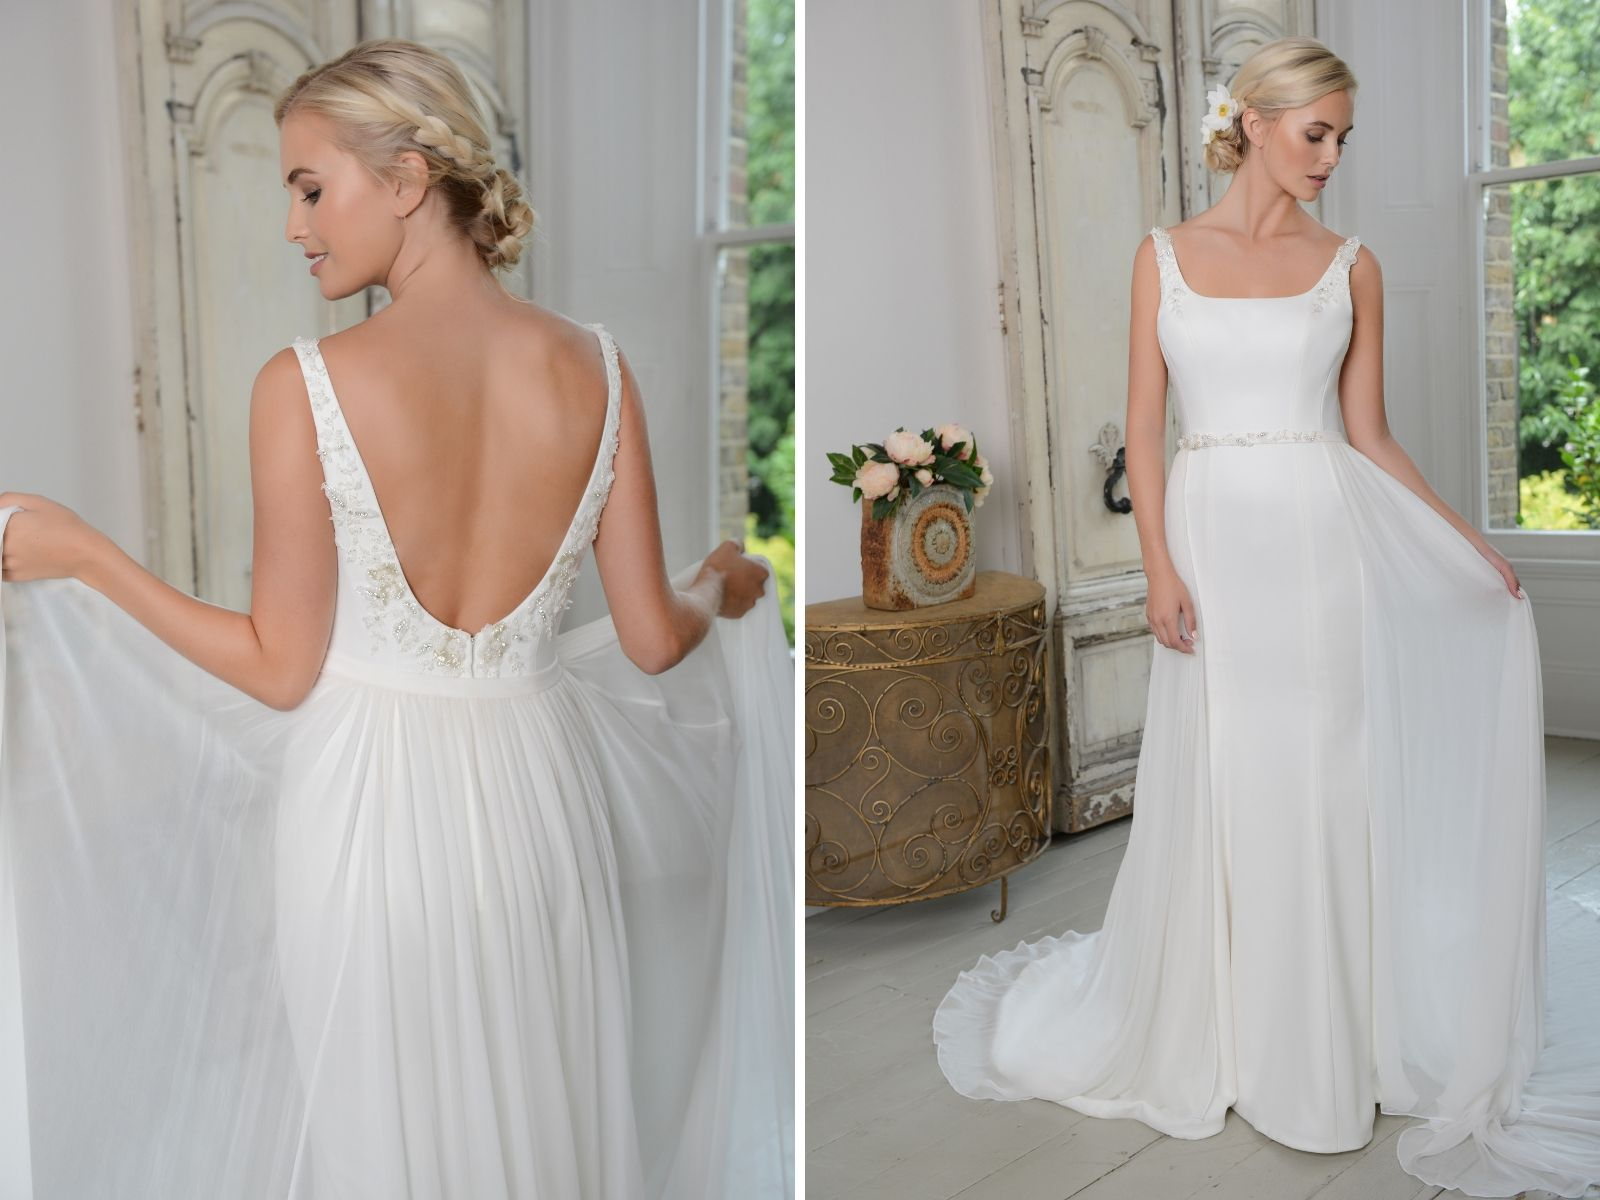 Light tulle wedding dress at Boho Bride boutique